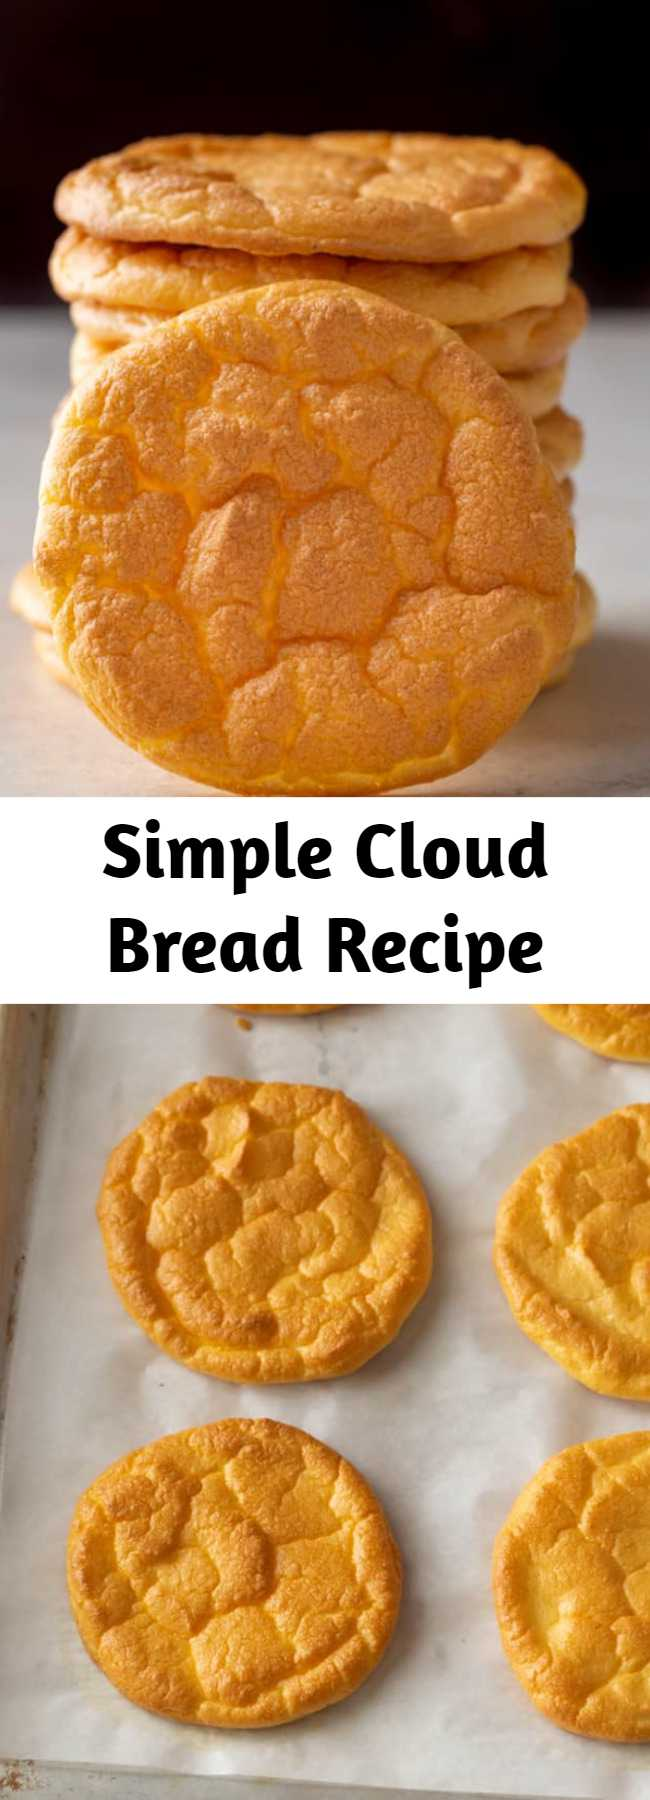 Simple Cloud Bread Recipe - This simple cloud bread recipe is a low carb, keto friendly option that is light, fluffy, and great for sandwiches. #bread #baking #lowcarb #keto #glutenfree